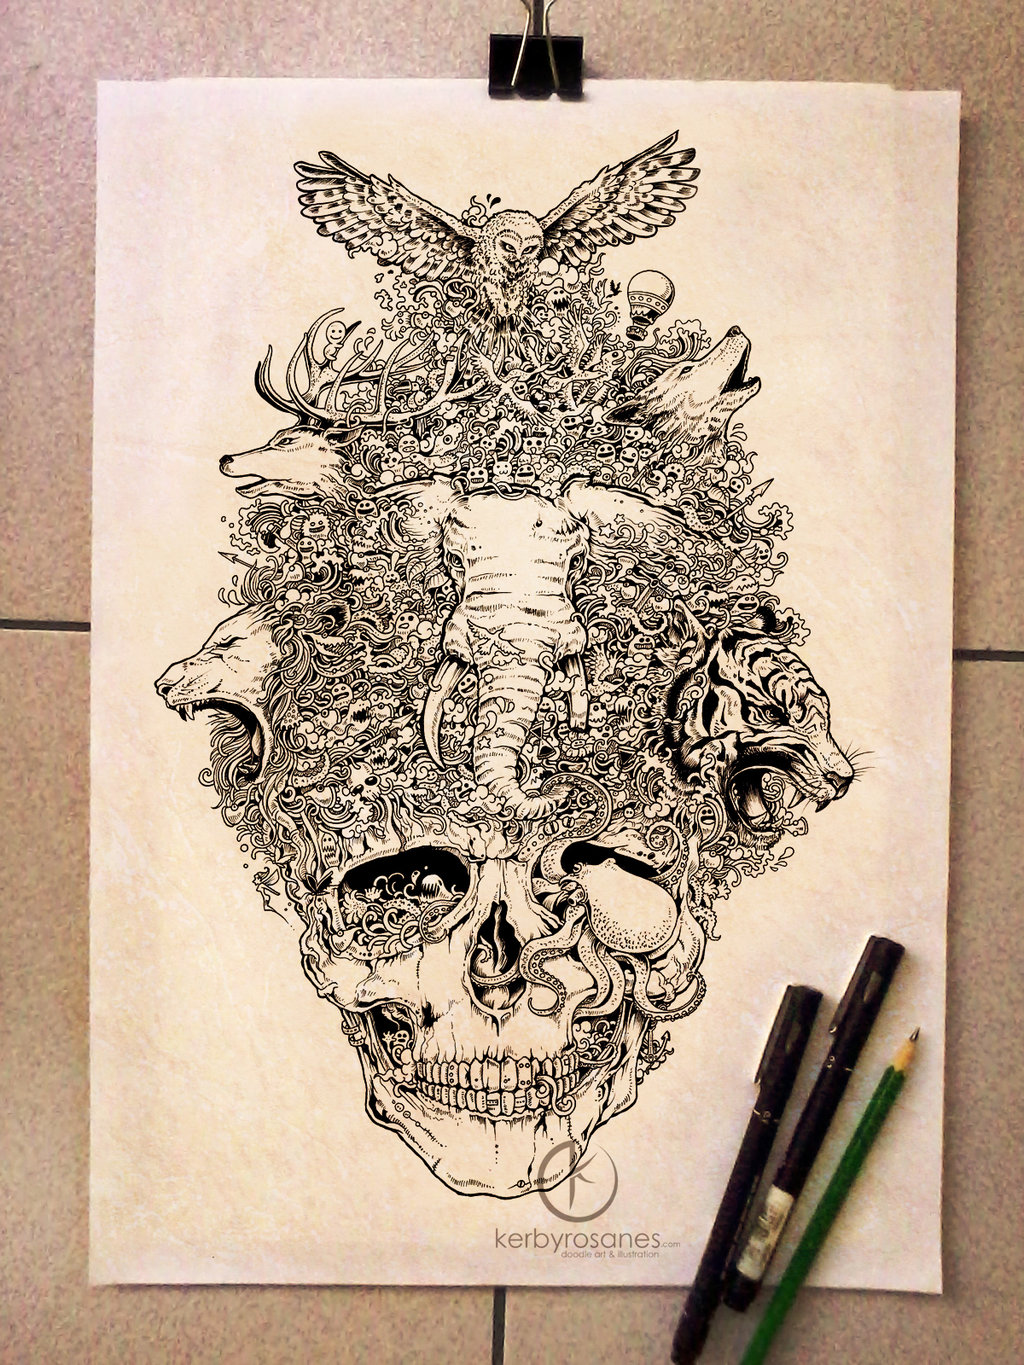 Amazing moleskine doodles burst with energy for Kerby rosanes